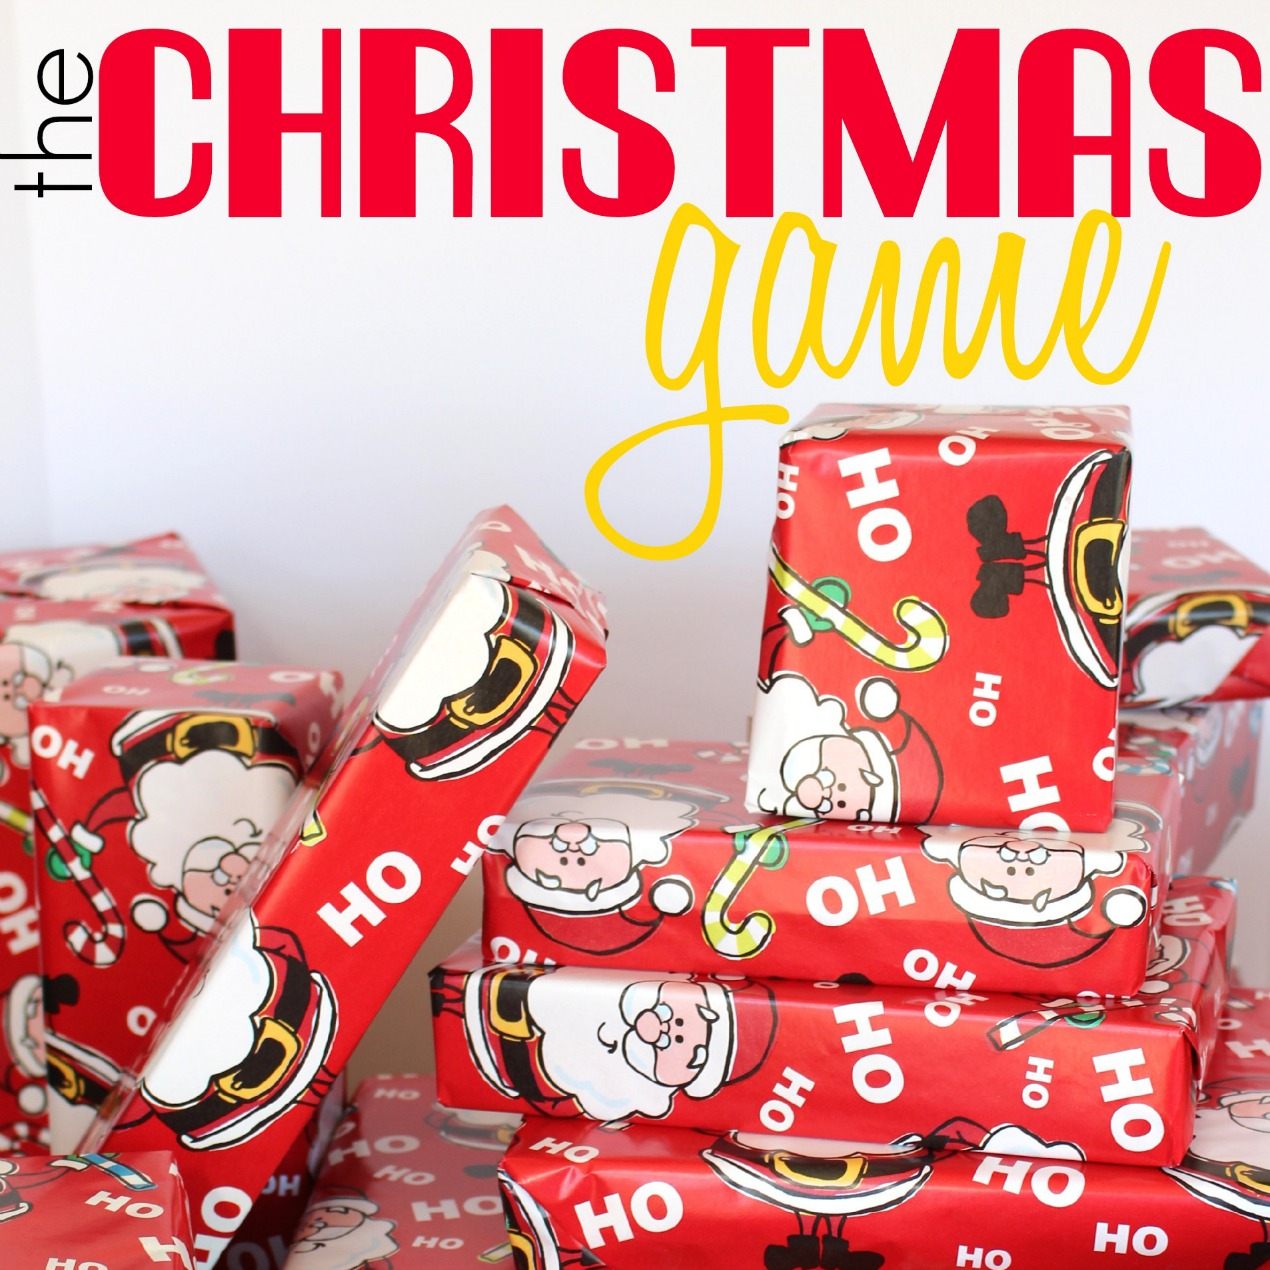 Christmas Party Games Ideas For Adults: The Christmas Game